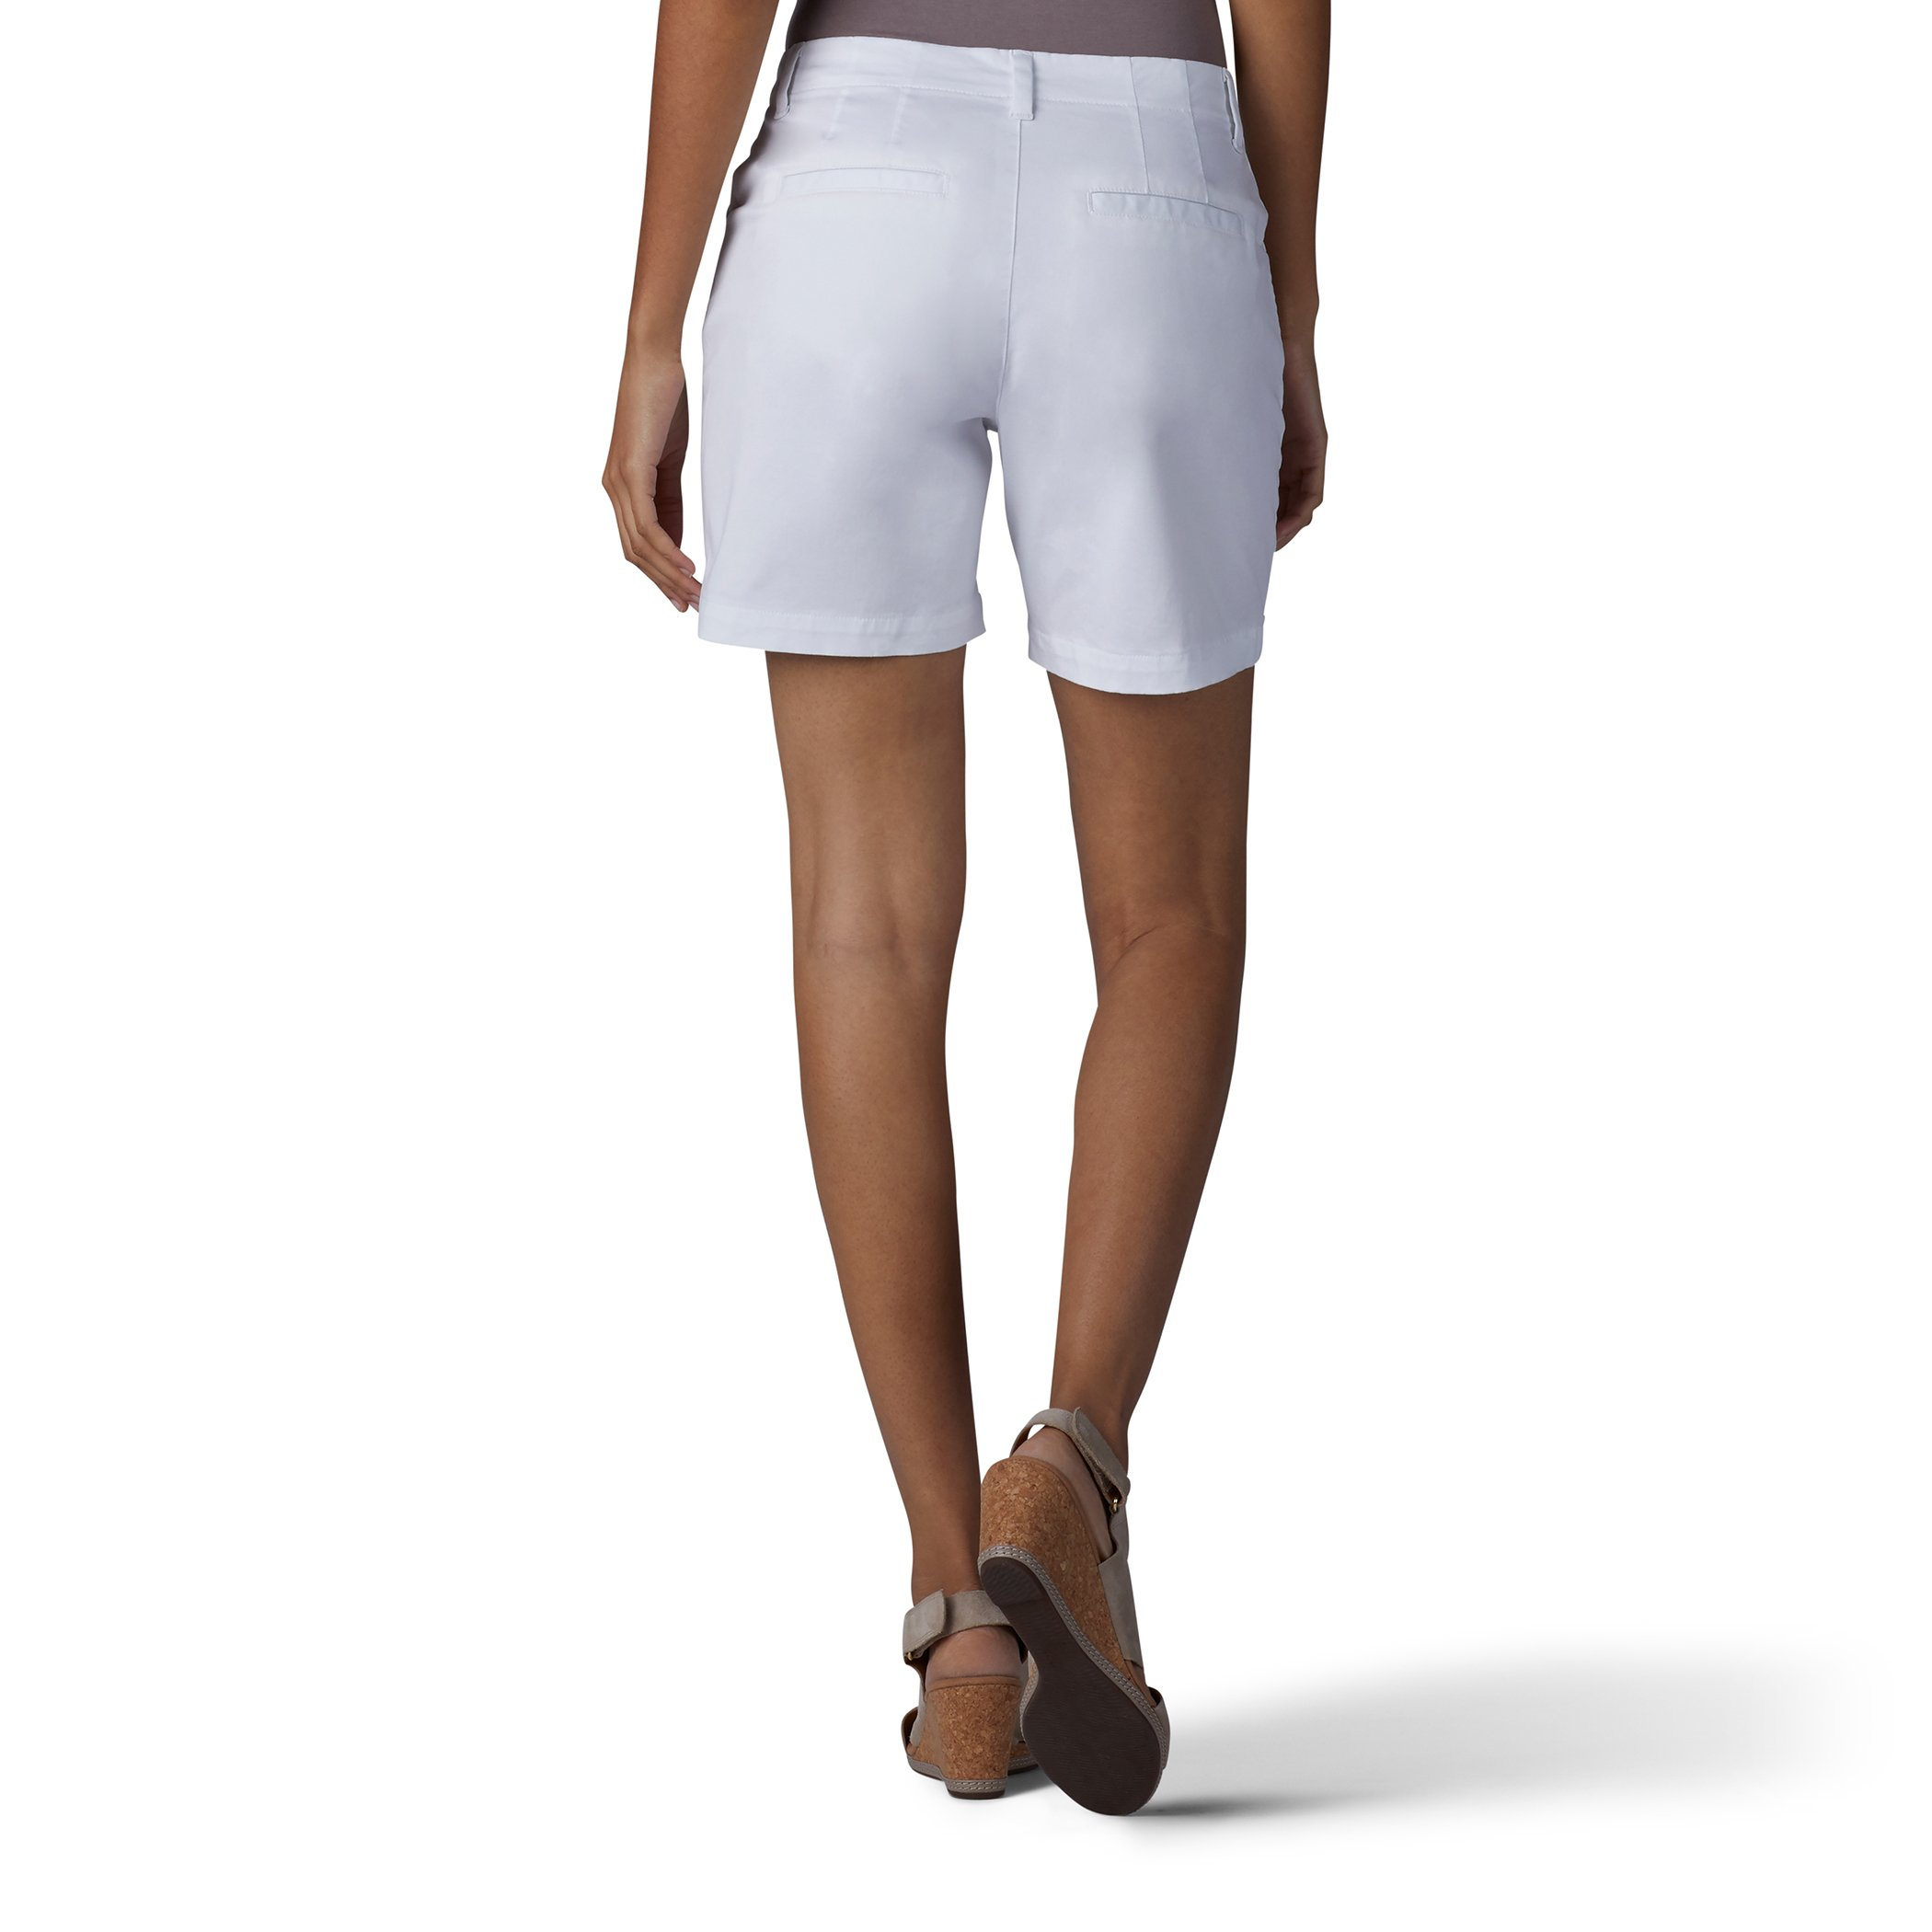 LEE Women's Straight Fit Tailored Chino Short, White, 12 by LEE (Image #2)